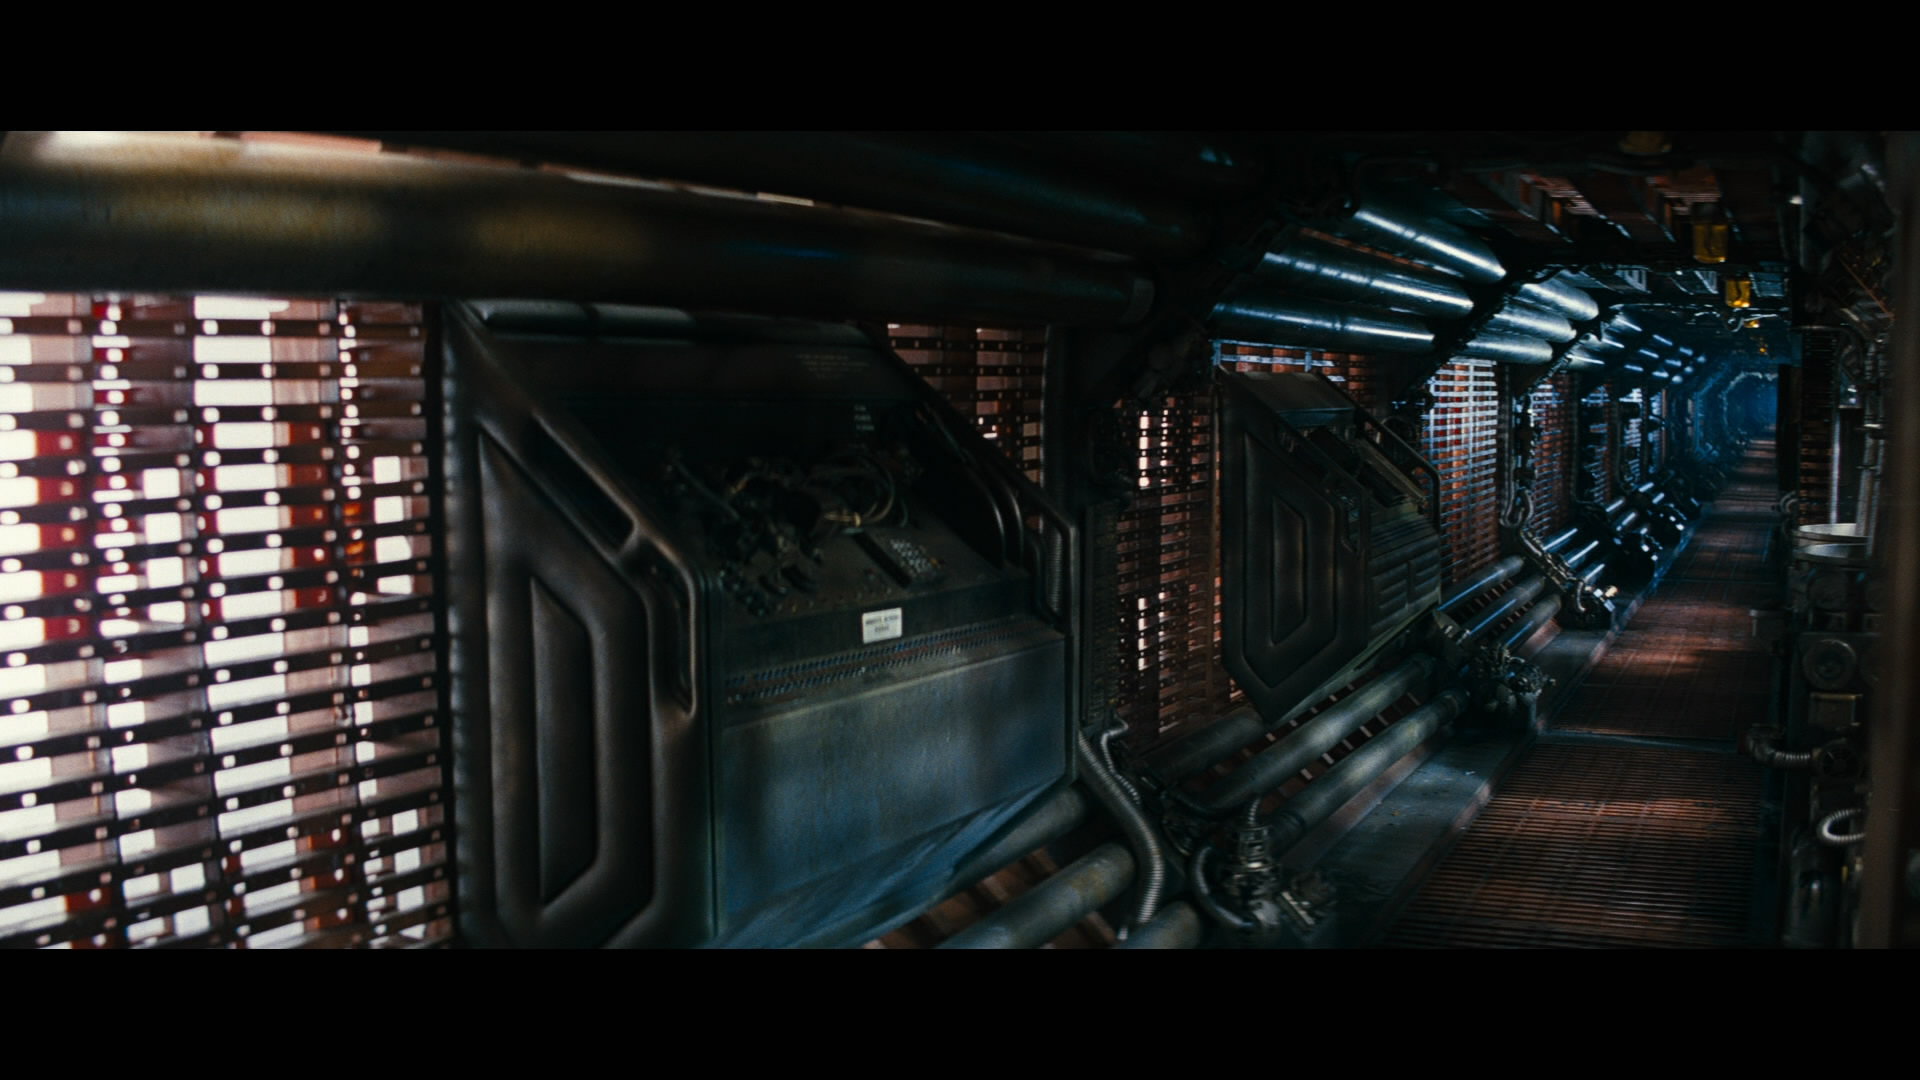 Sxblog from alien to alien isolation mxdwn movies for Interieur vaisseau spatial